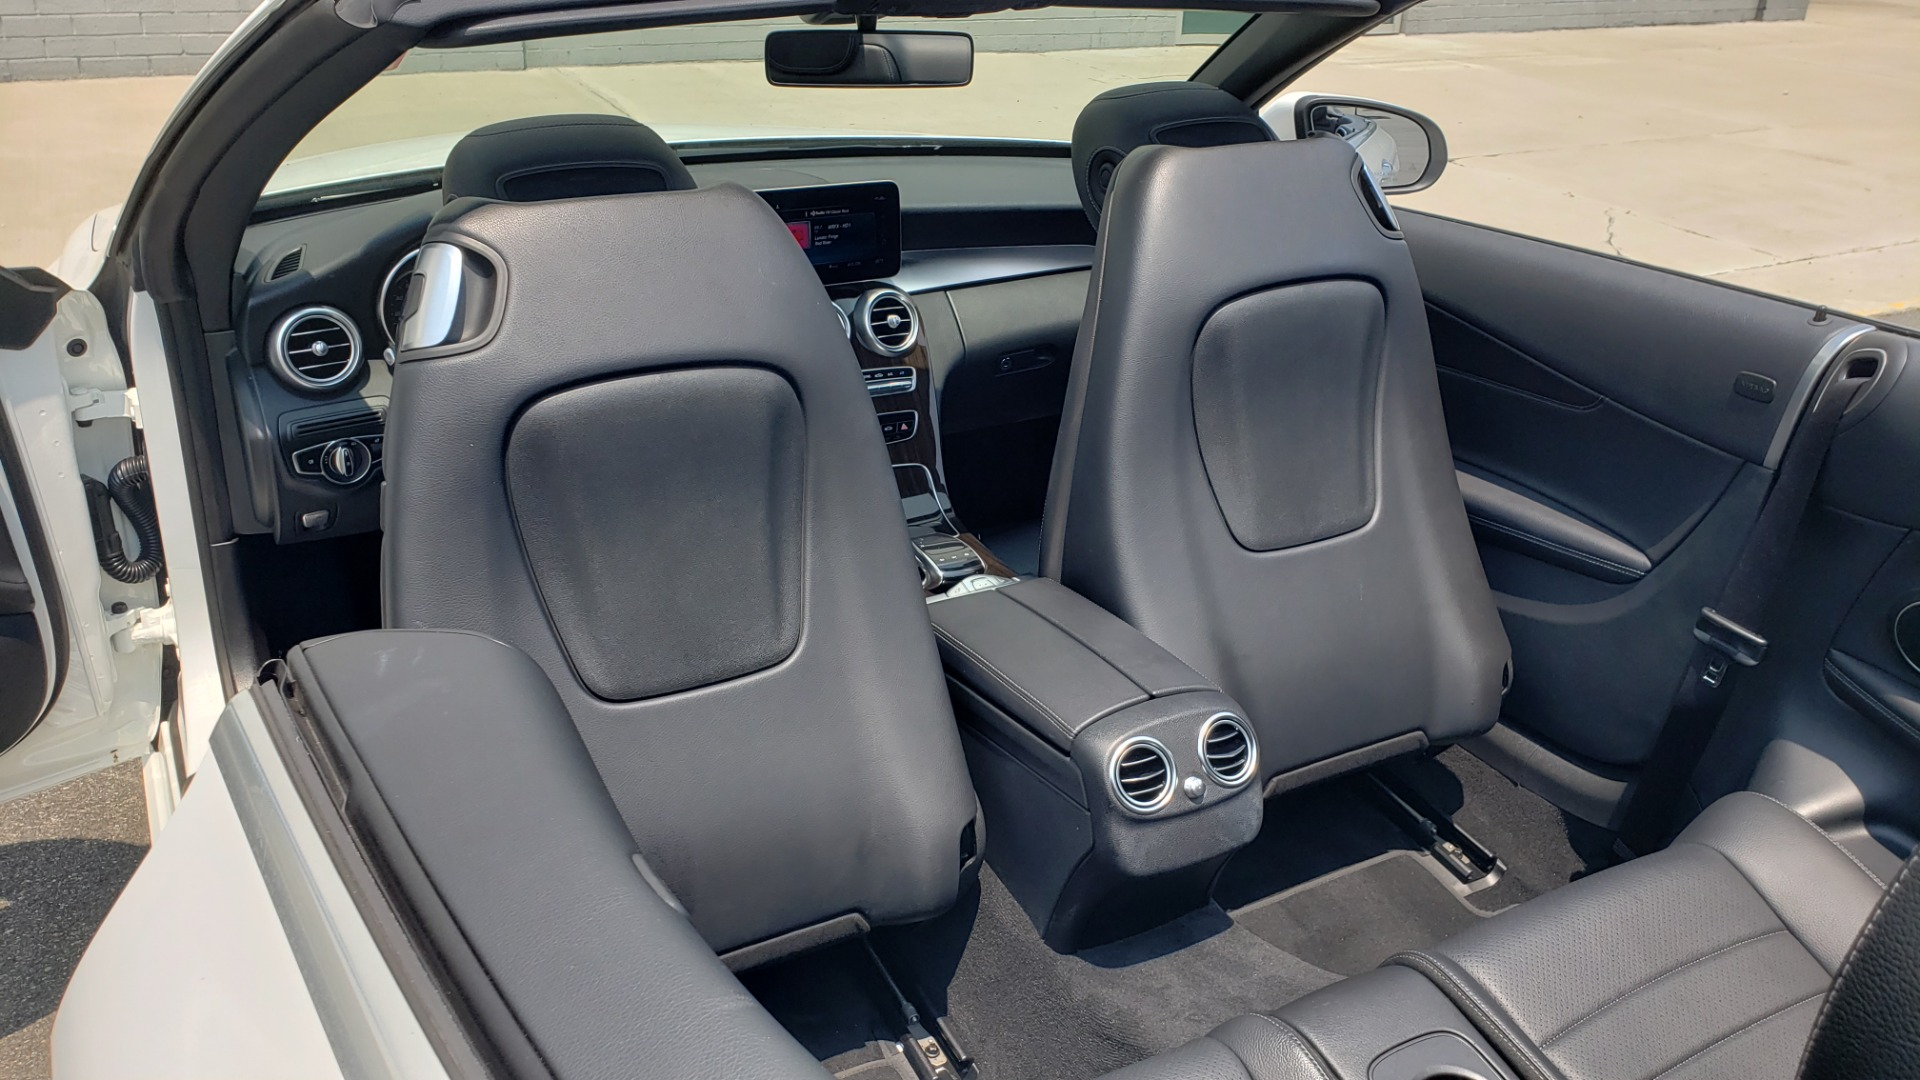 Used 2019 Mercedes-Benz C-CLASS C 300 CABRIOLET 2.0L / AUTO / NAV / HD RADIO / REARVIEW for sale $46,995 at Formula Imports in Charlotte NC 28227 34